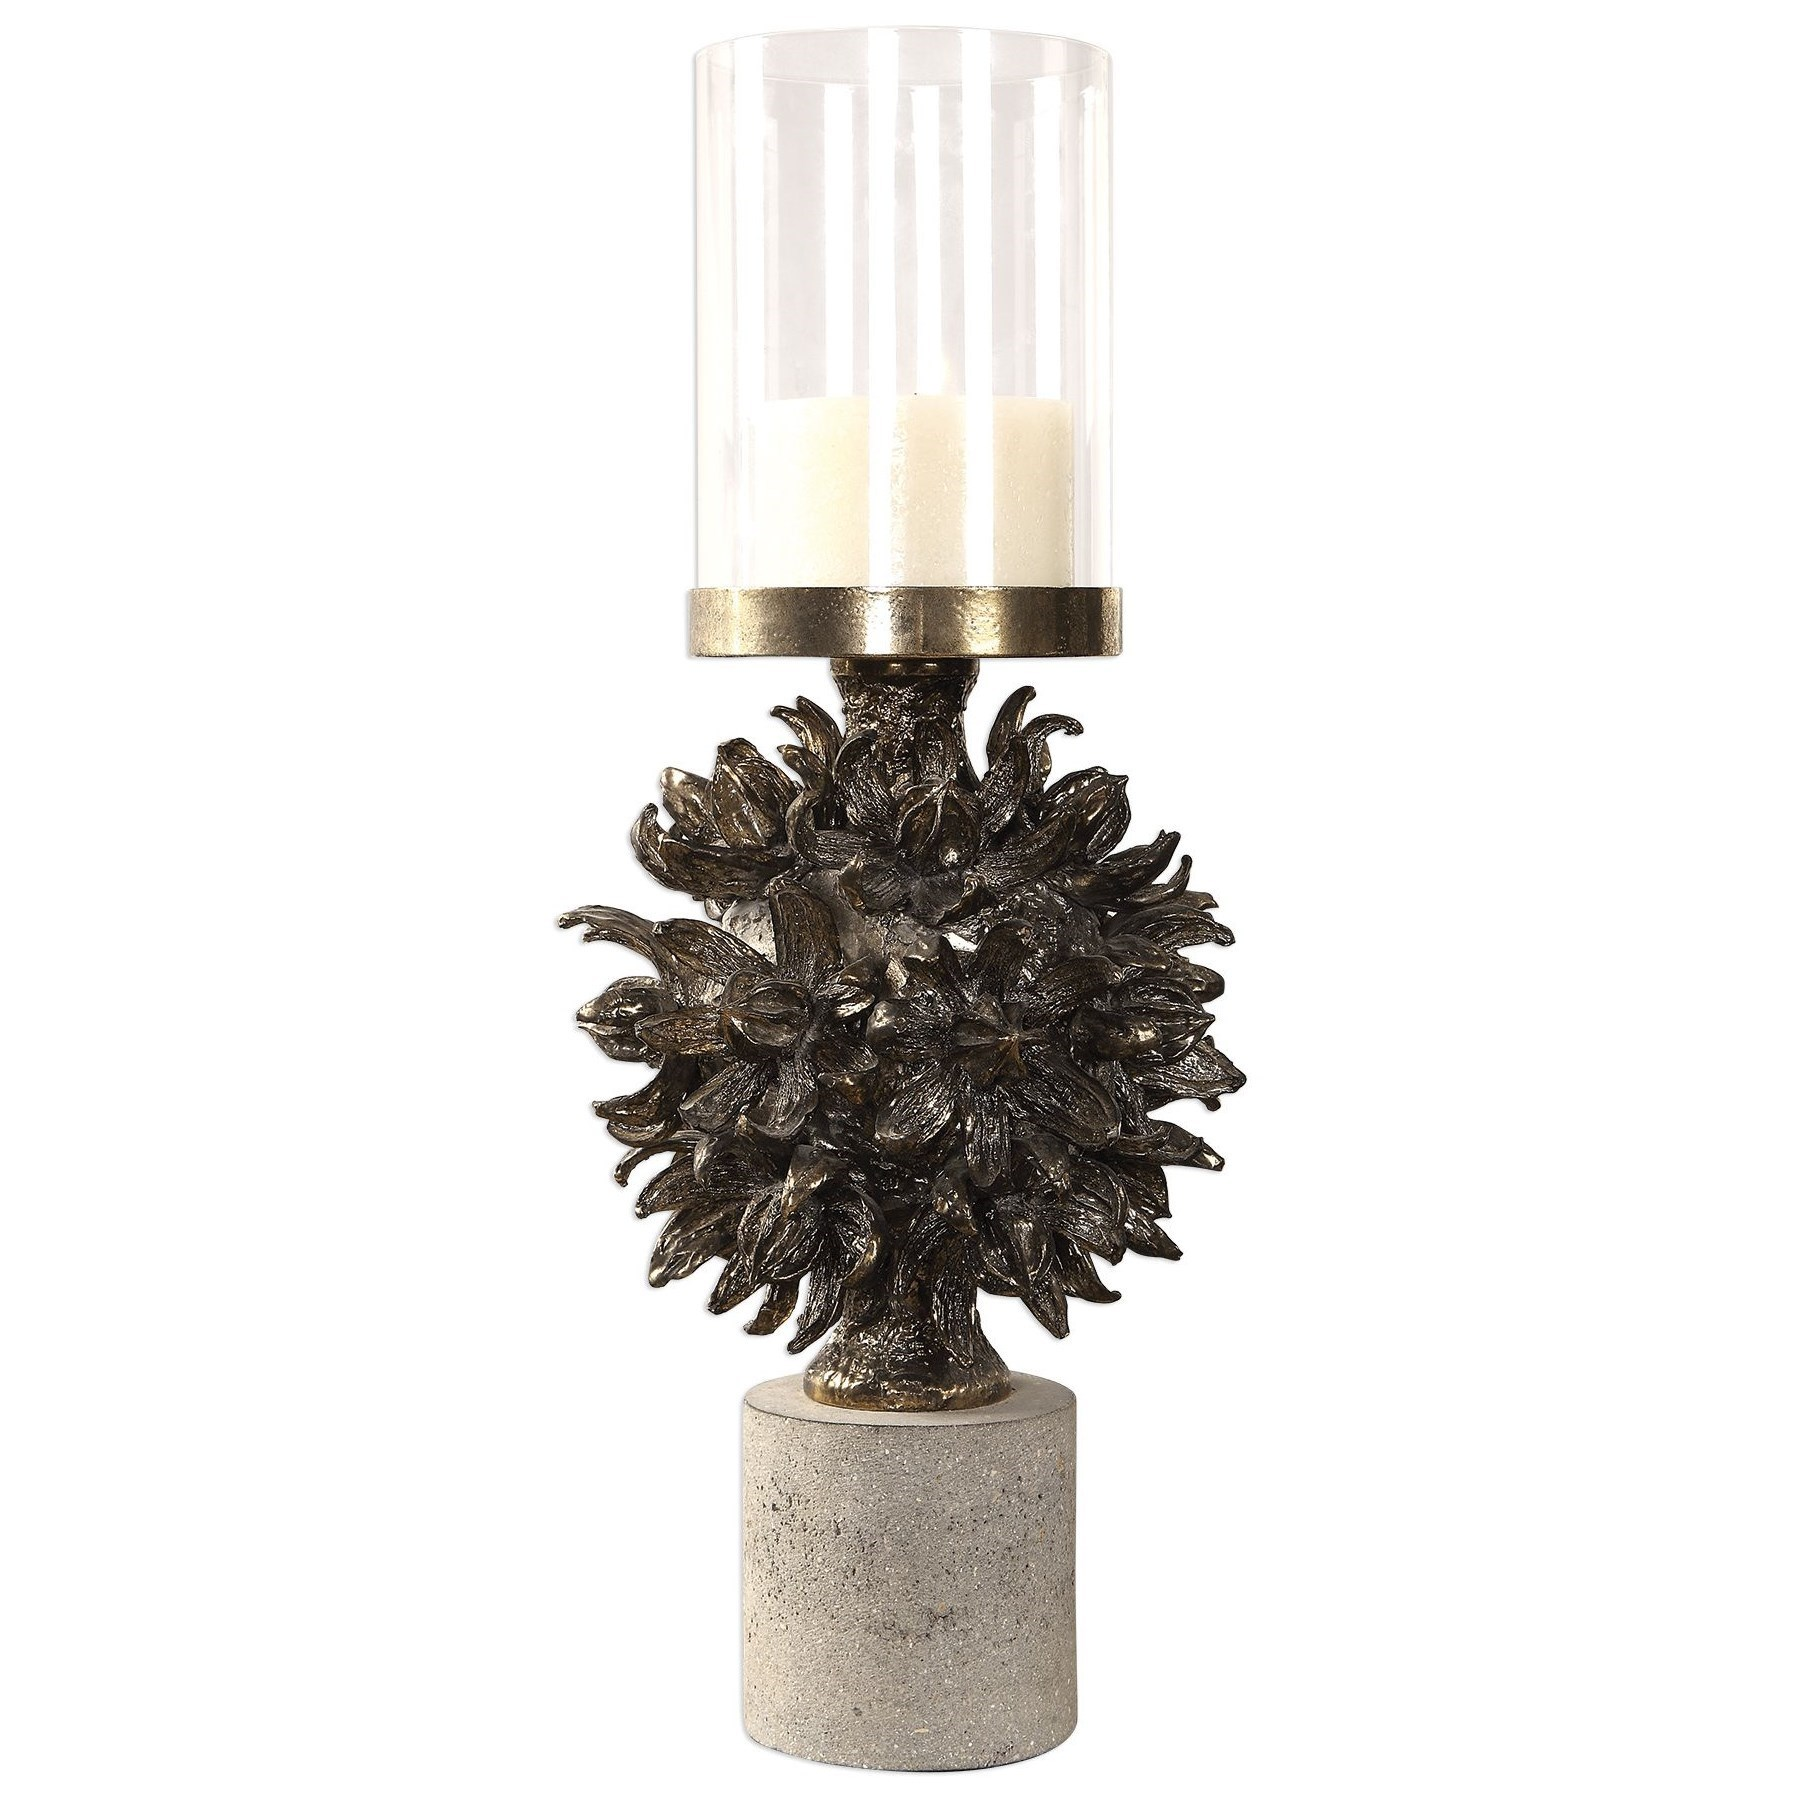 Accessories - Candle Holders Autograph Tree Antique Bronze Cand by Uttermost at Mueller Furniture